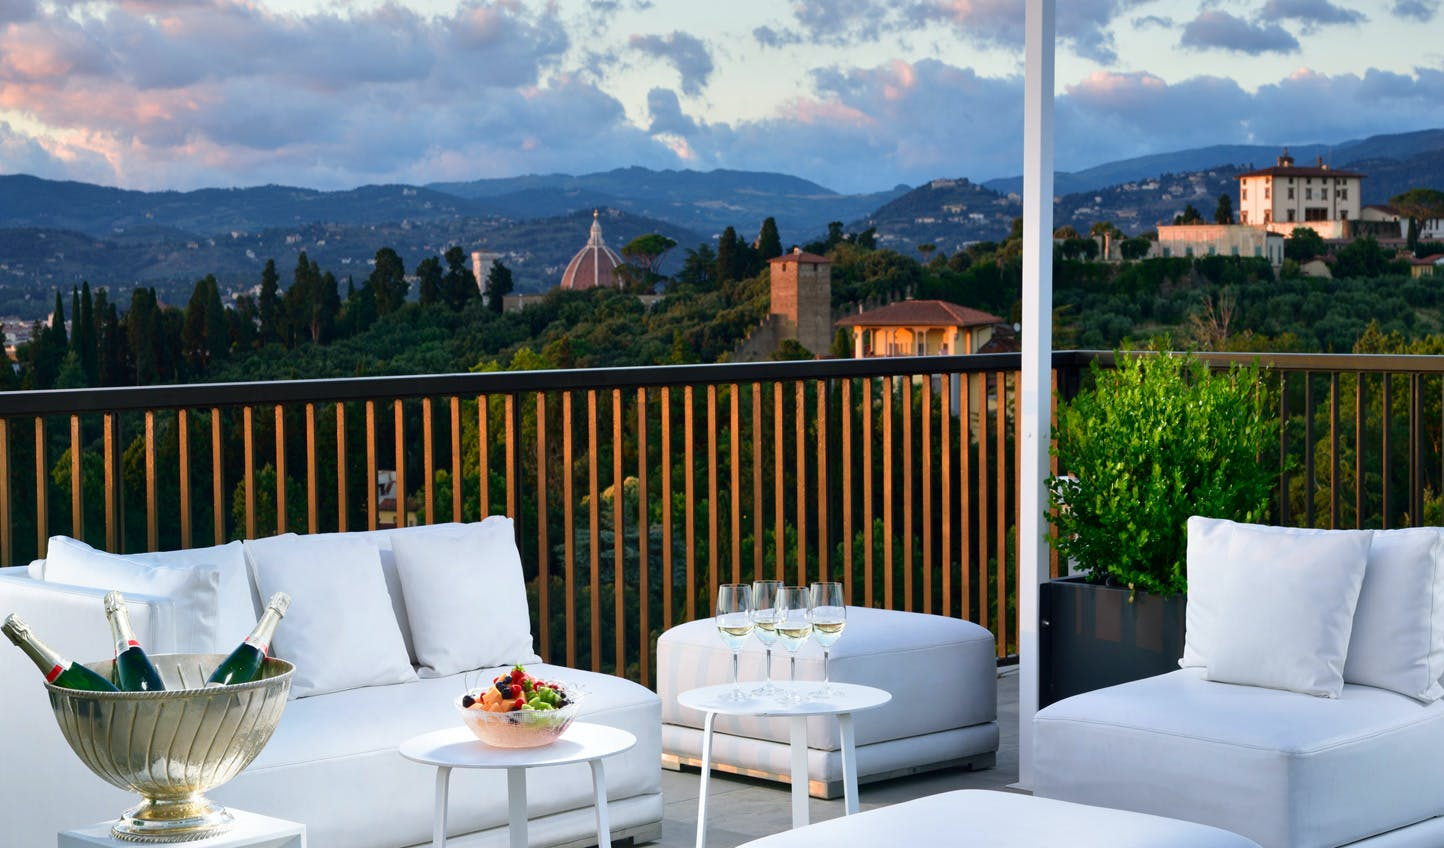 Luxury hotels in Florence